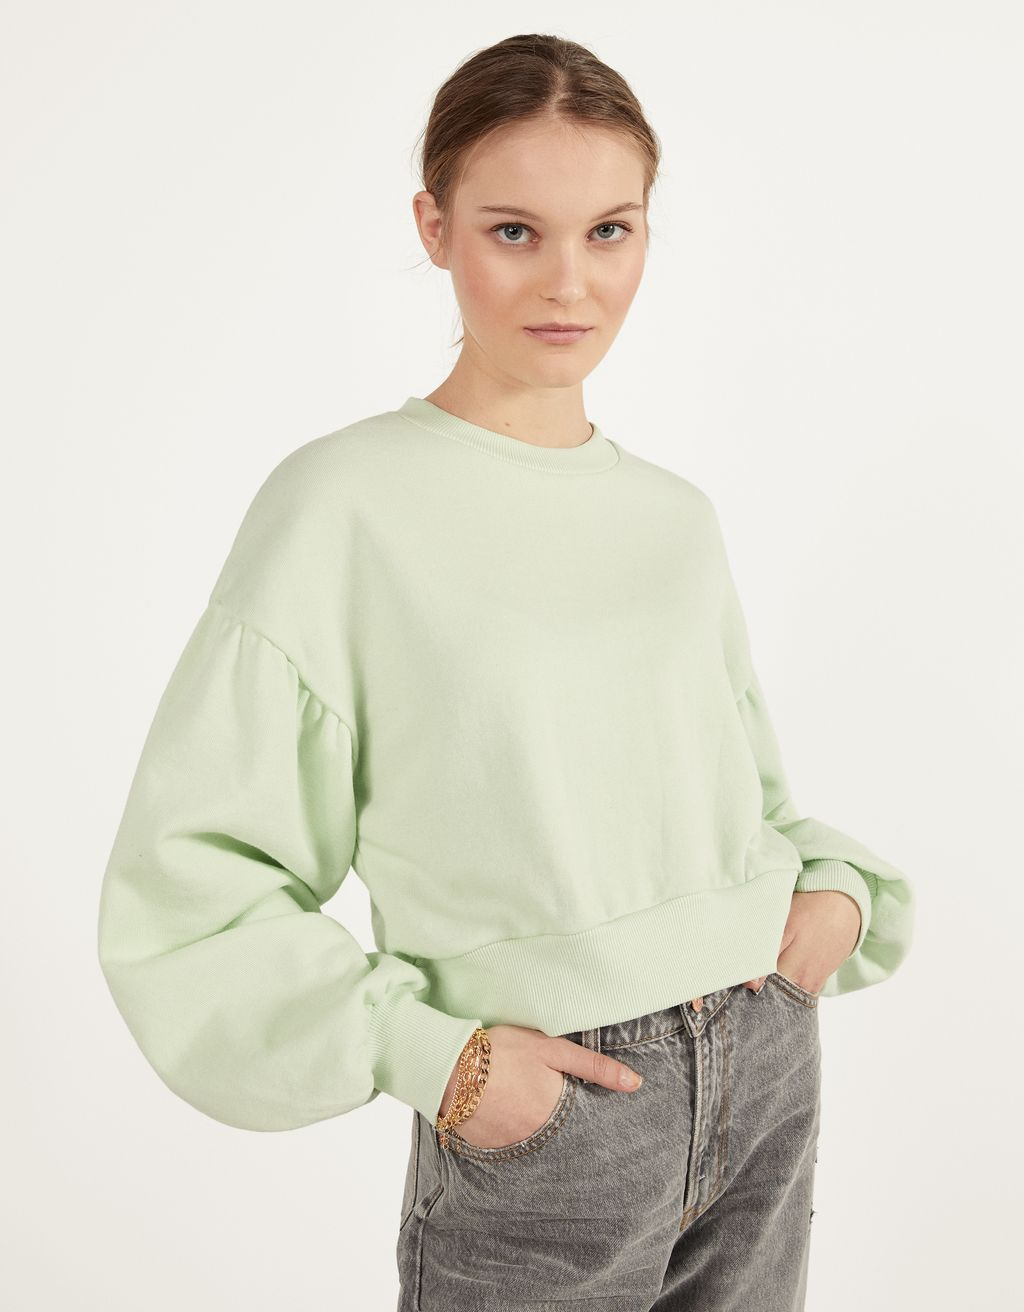 Sweatshirt with voluminous sleeves